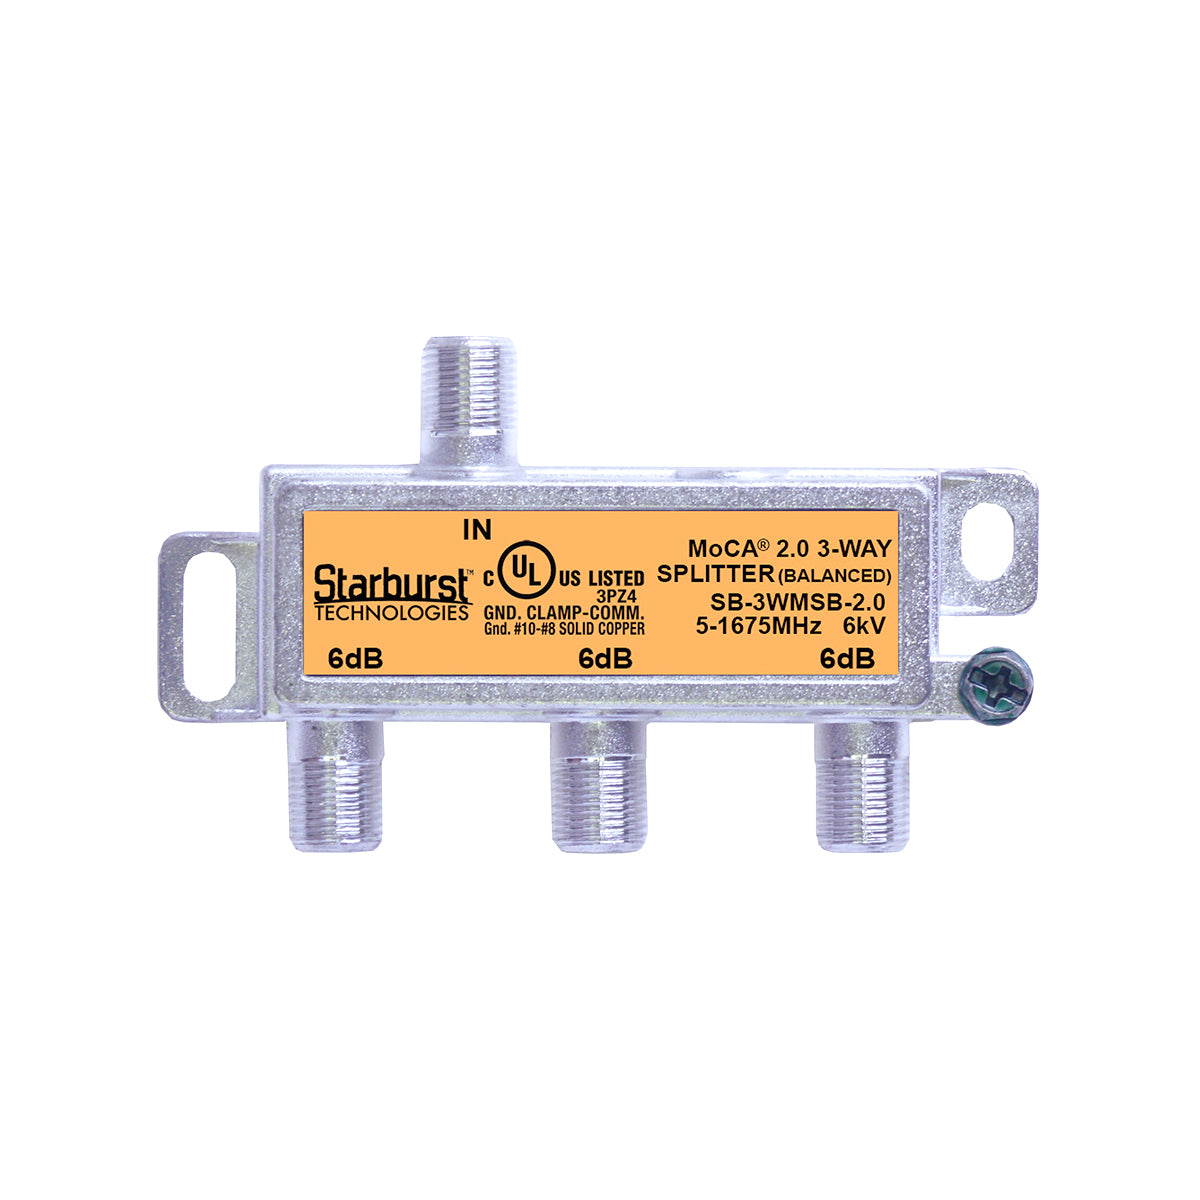 SB-3WMSB-2.0 - 3 Way Horizontal Balanced Coaxial Cable Splitter, 6Kv Rated, 5-1675 MHz Wide Band For Ethernet Over Coax Universal Home Networking, Compatible With 1GHz, MoCA 2.0, HPNA and DOCSIS 3.1 Networks